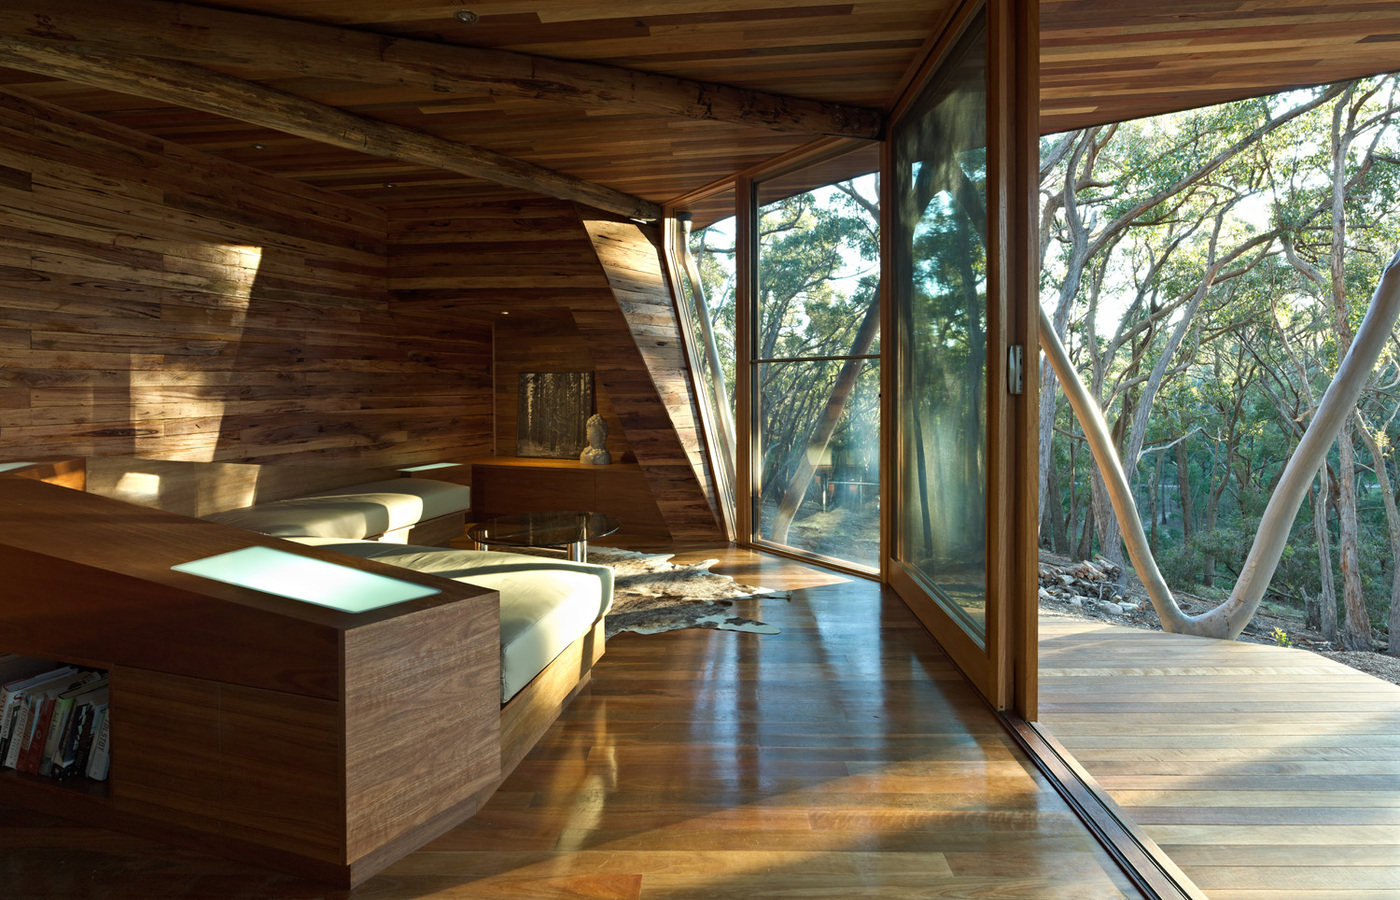 wood ceiling and floor, cabin cozy interior